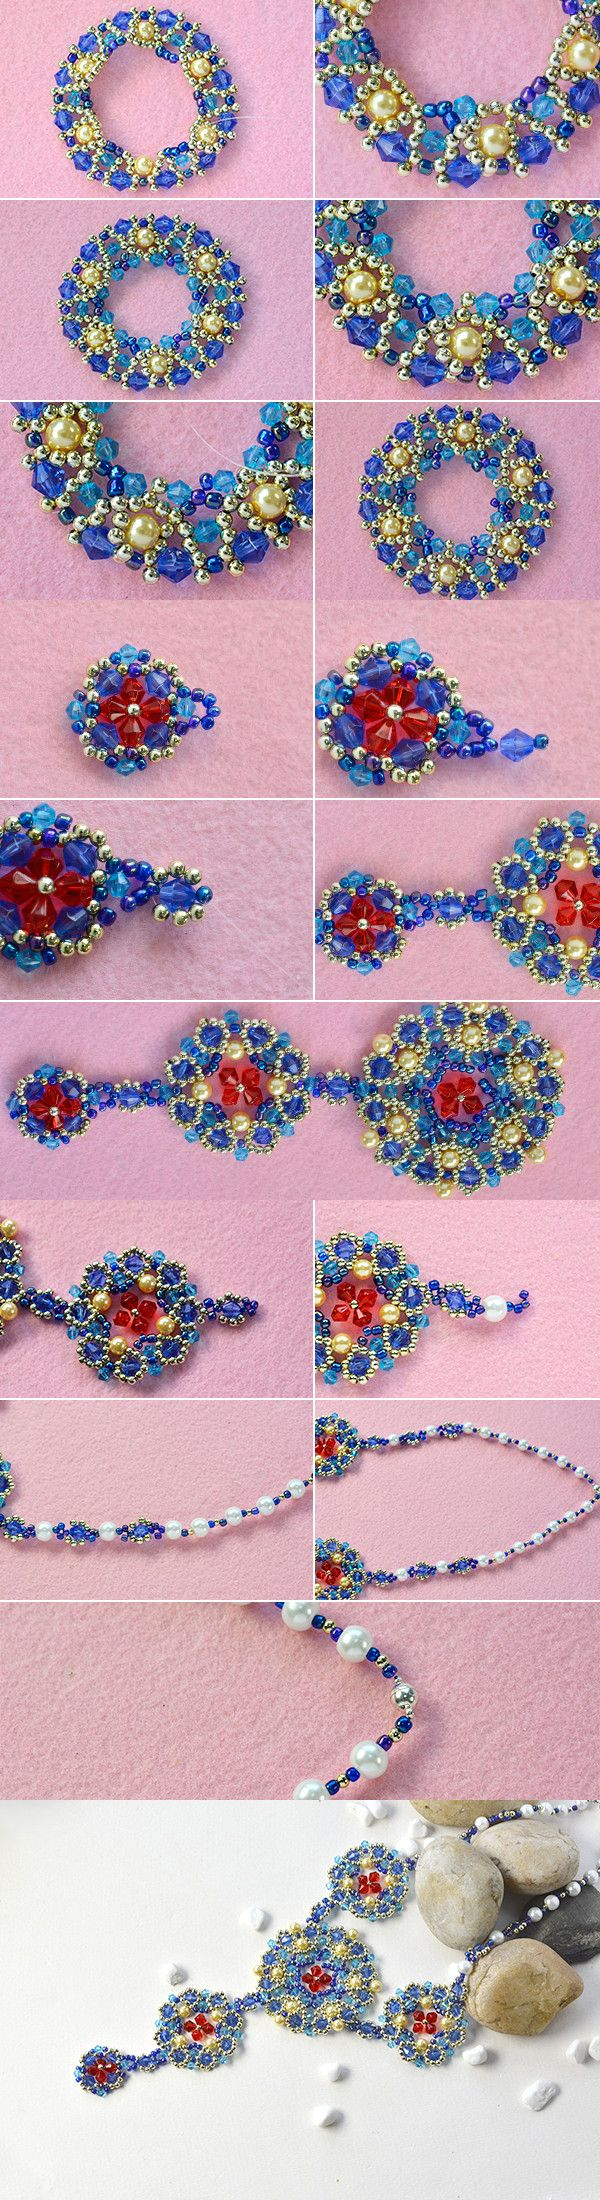 1281 best beading necklaces and pendants tutorials images on beaded pendant necklace wanna it lcndahall will publish the tutorial aloadofball Gallery